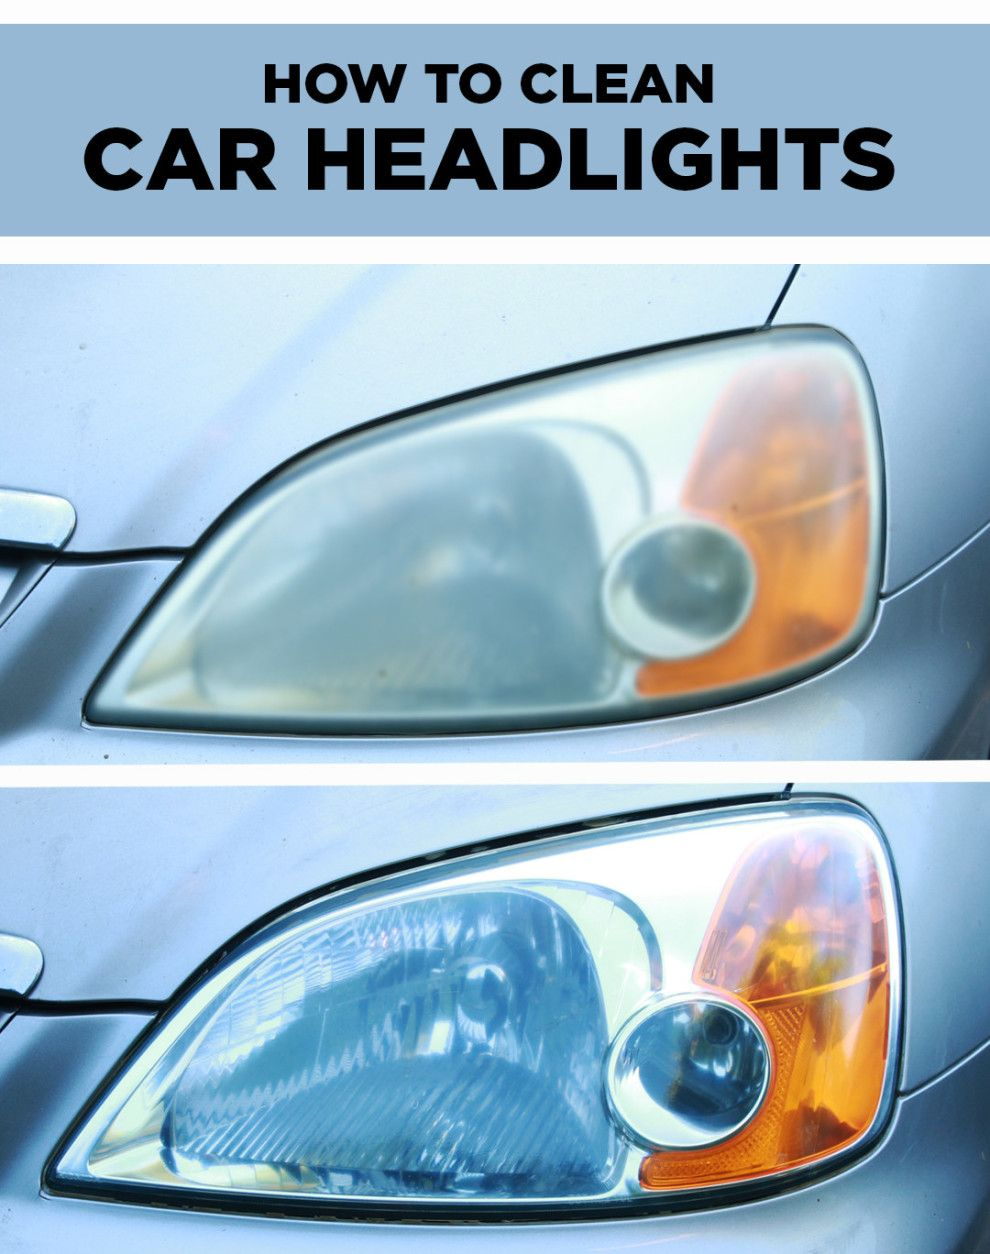 Dirty car headlights are no match for this clever cleaning